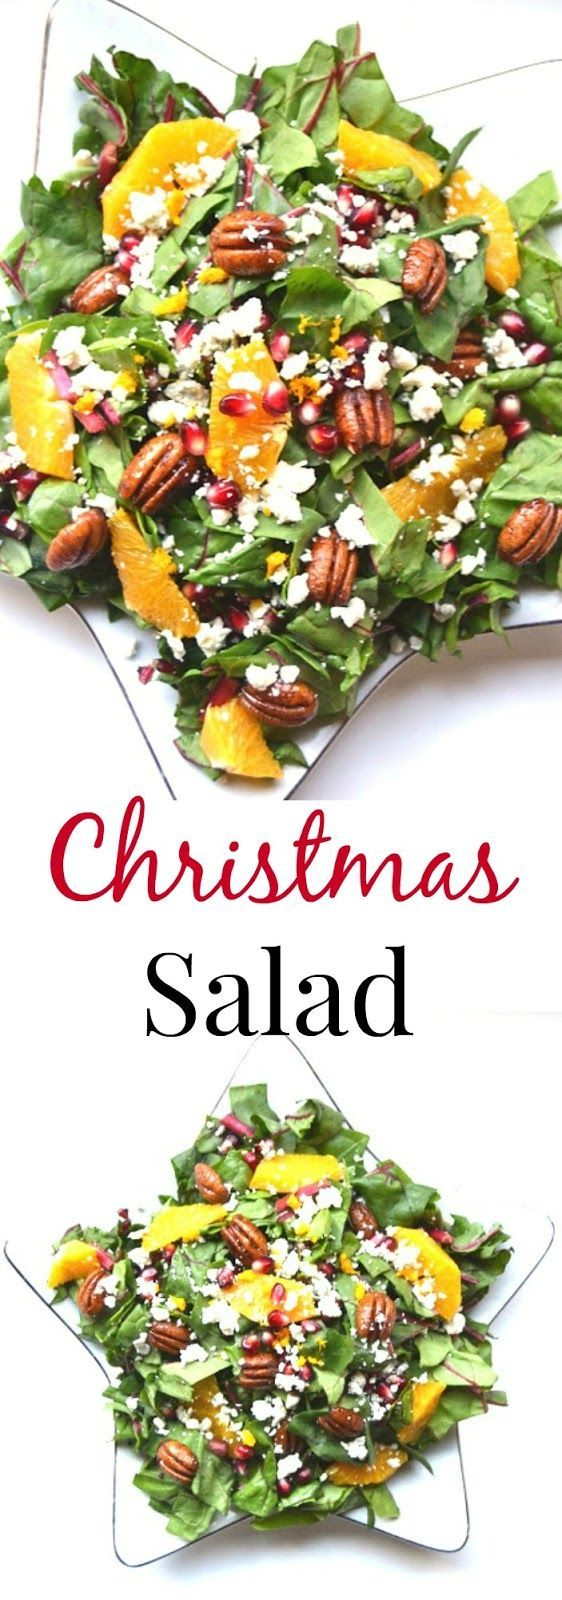 This Christmas Salad is packed full of nutrients and flavor with fresh oranges, pomegranate seeds, pecans, Swiss chard and blue cheese with a homemade dressing. www.nutritionistreviews.com